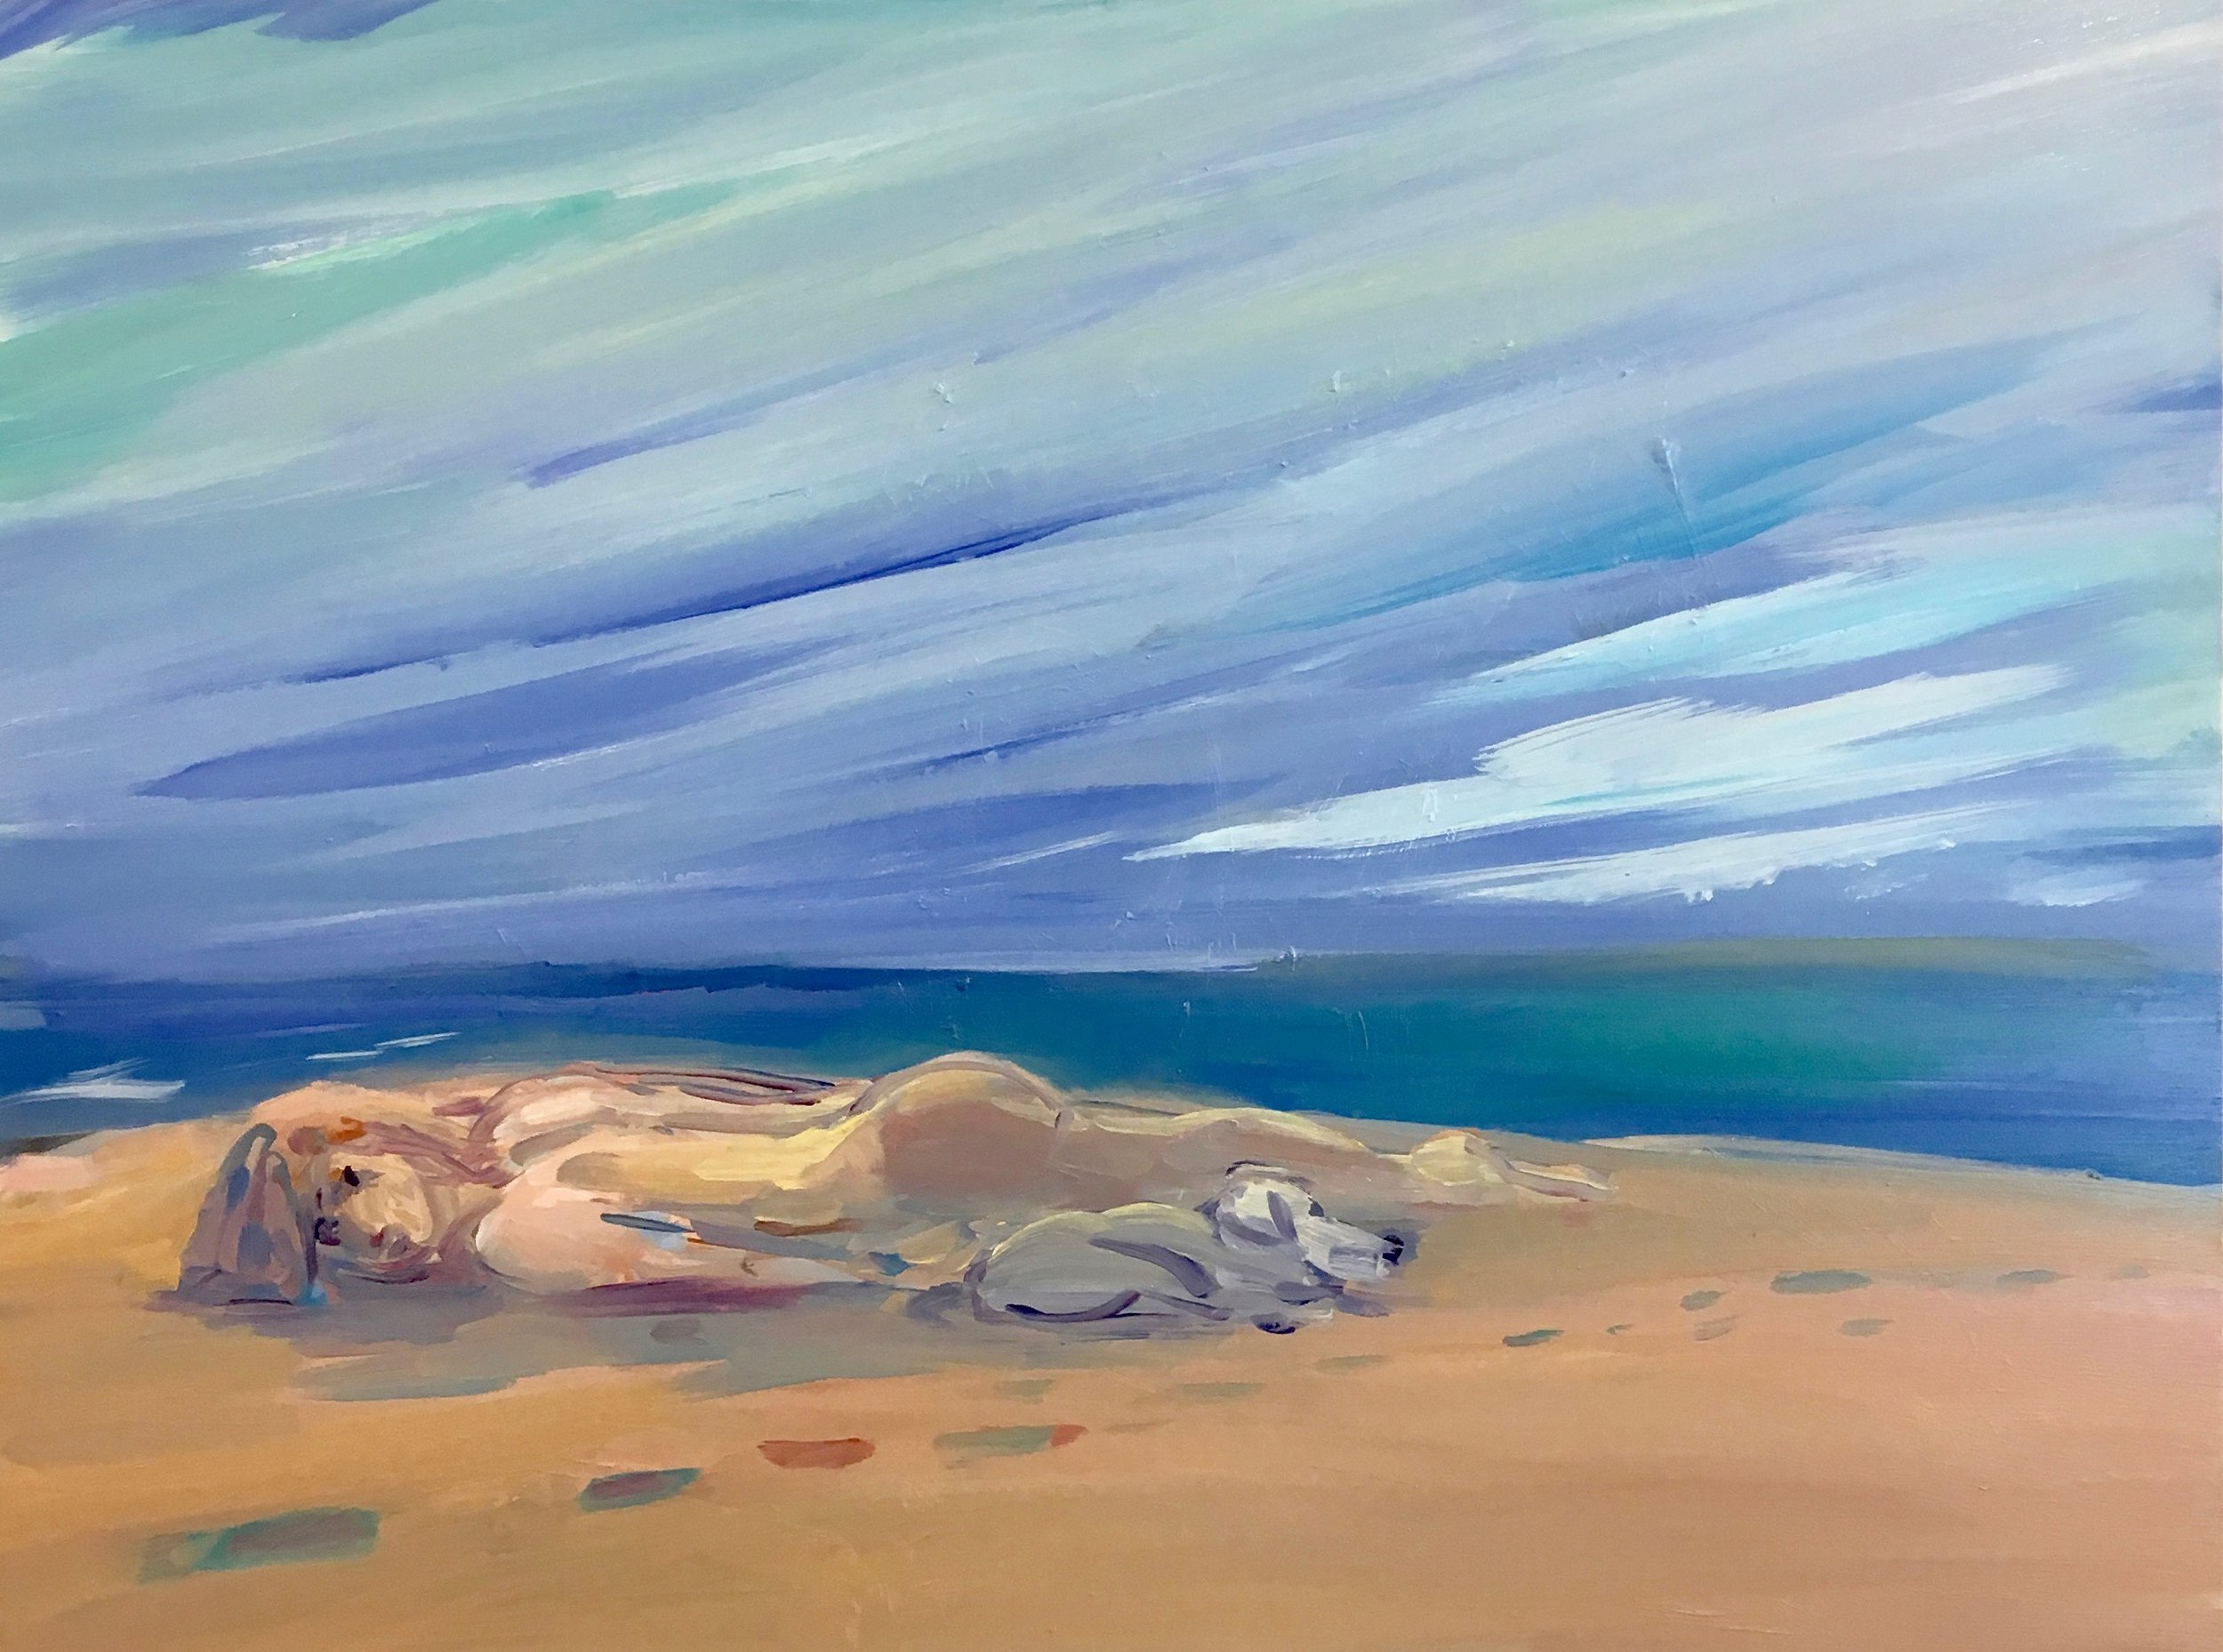 Deborah_Brown_Beach_2018_oil_on_Masonite_18x24inches.jpg